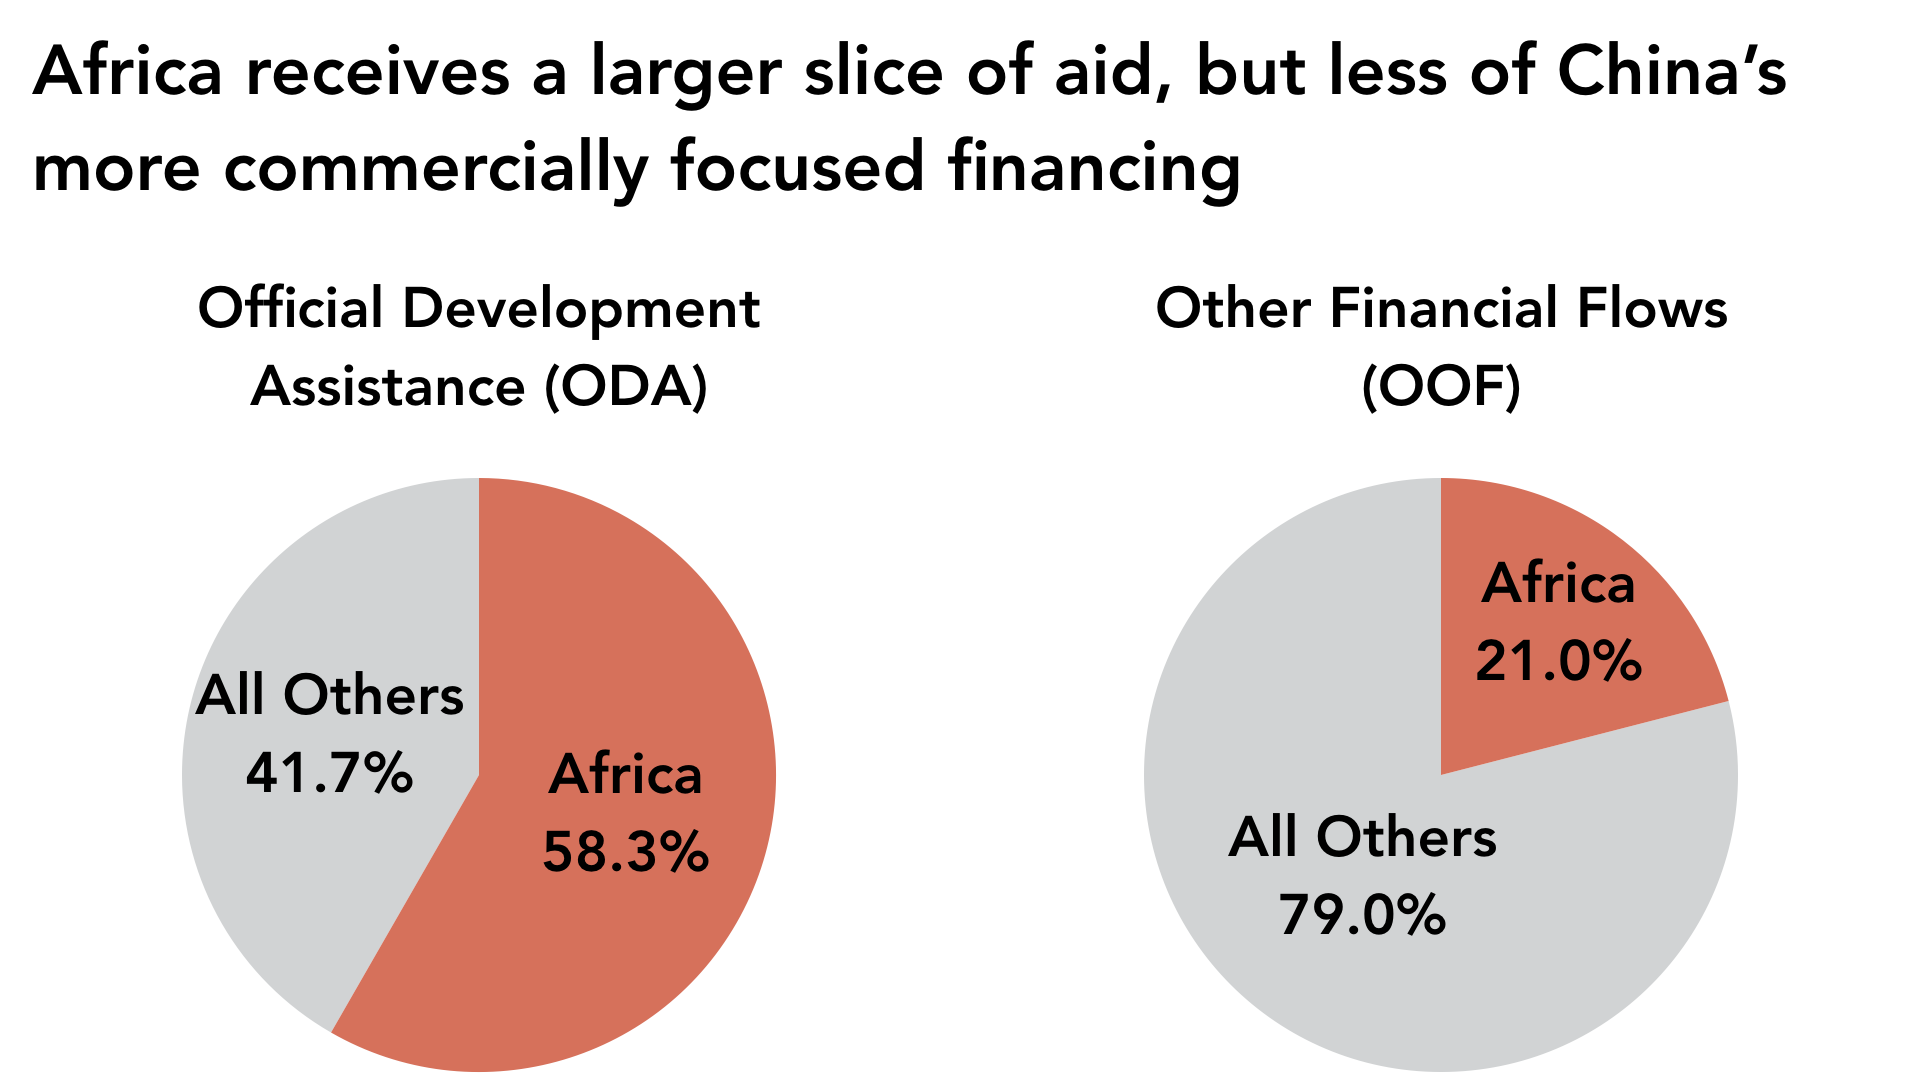 Africa receives 59.5% of China's Official Development Assistance but only 21% of its commercially oriented official financing